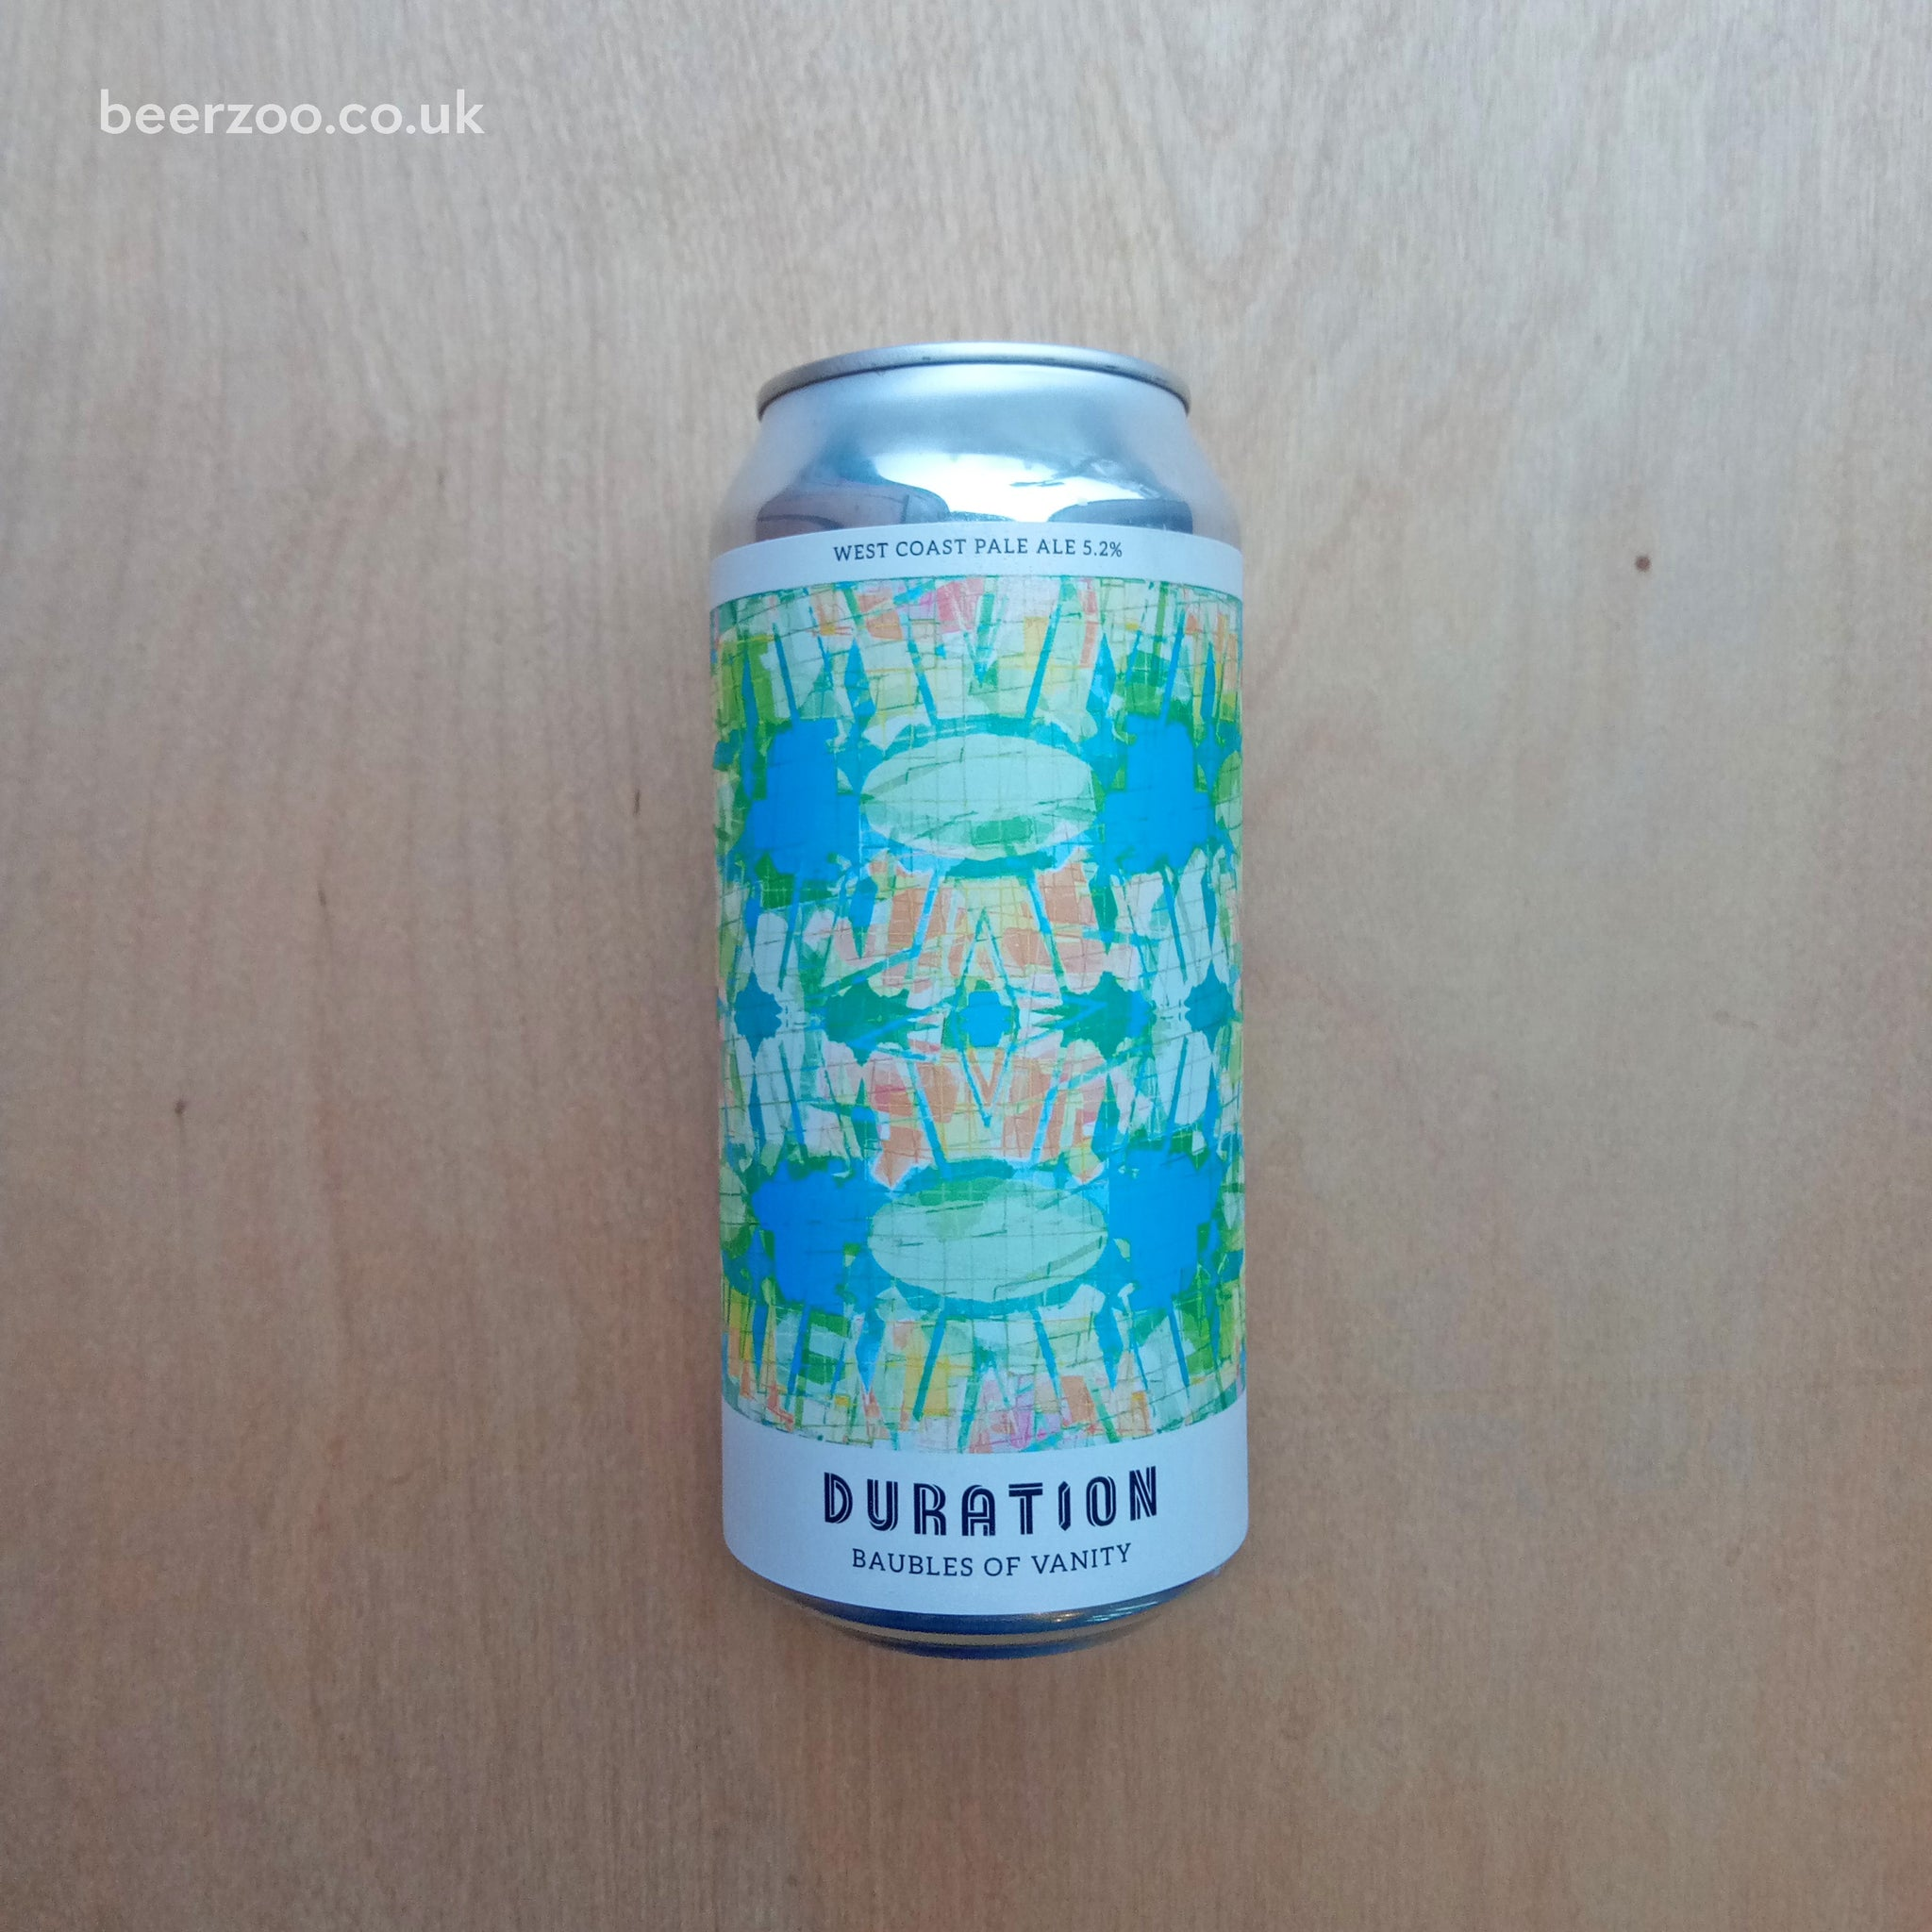 Duration - Baubles of Vanity 5.2% (440ml)